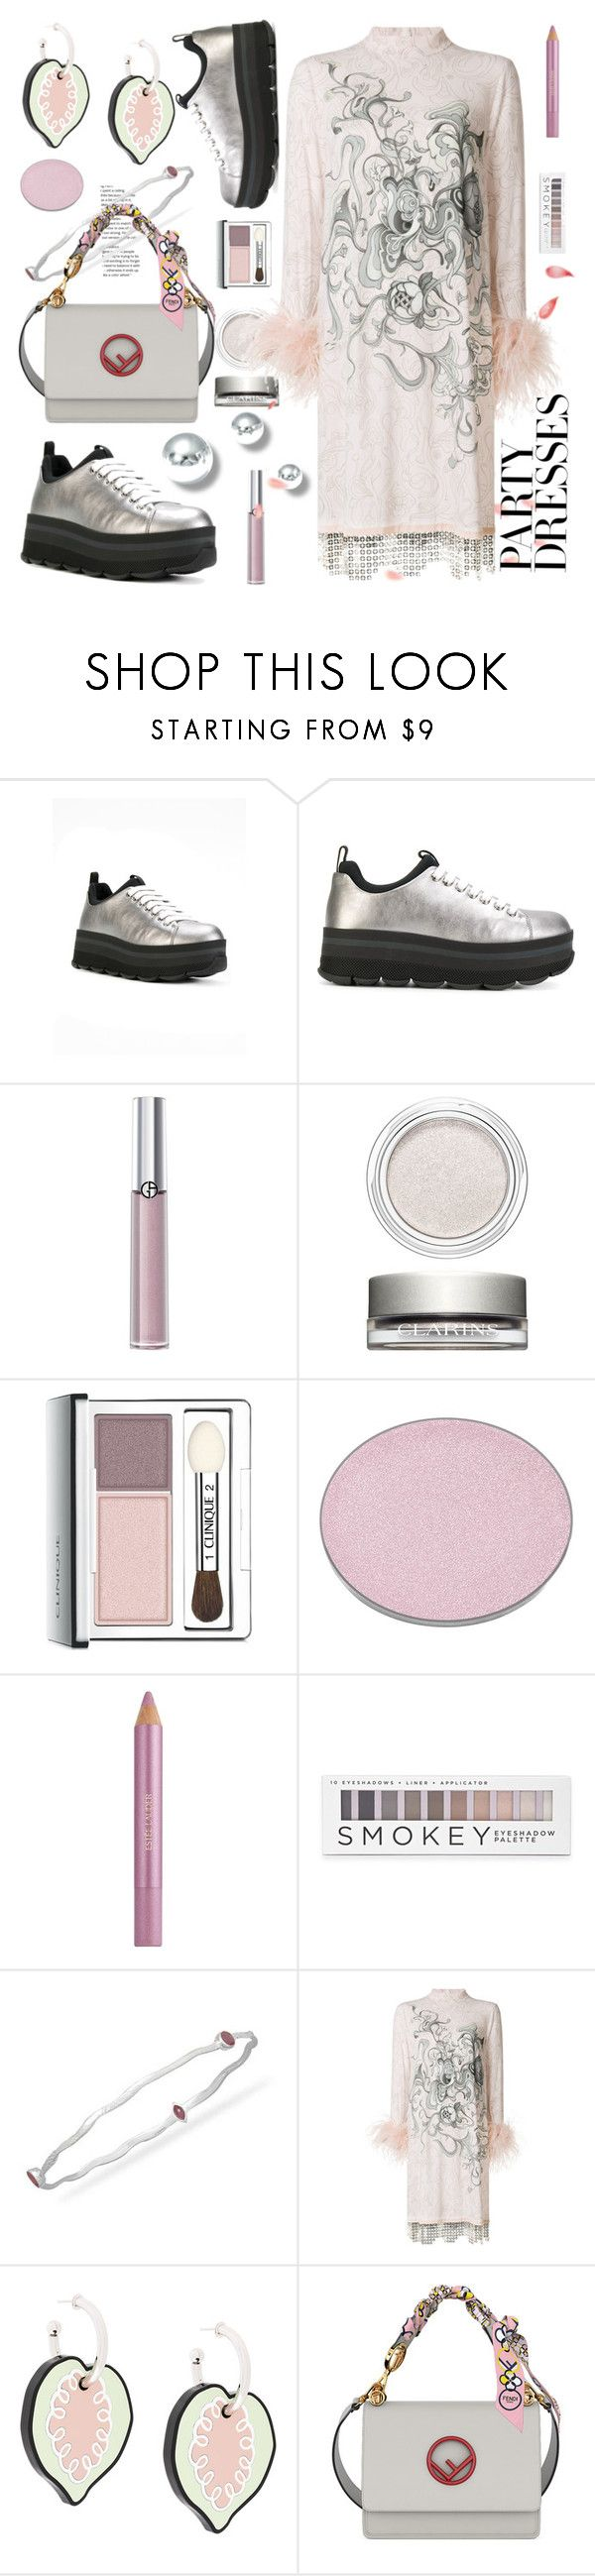 """Без названия #3440"" by ilona-828 ❤ liked on Polyvore featuring Prada, Armani Beauty, Clarins, Clinique, Chantecaille, Estée Lauder, Forever 21, Marni, Fendi and polyvoreeditorial"